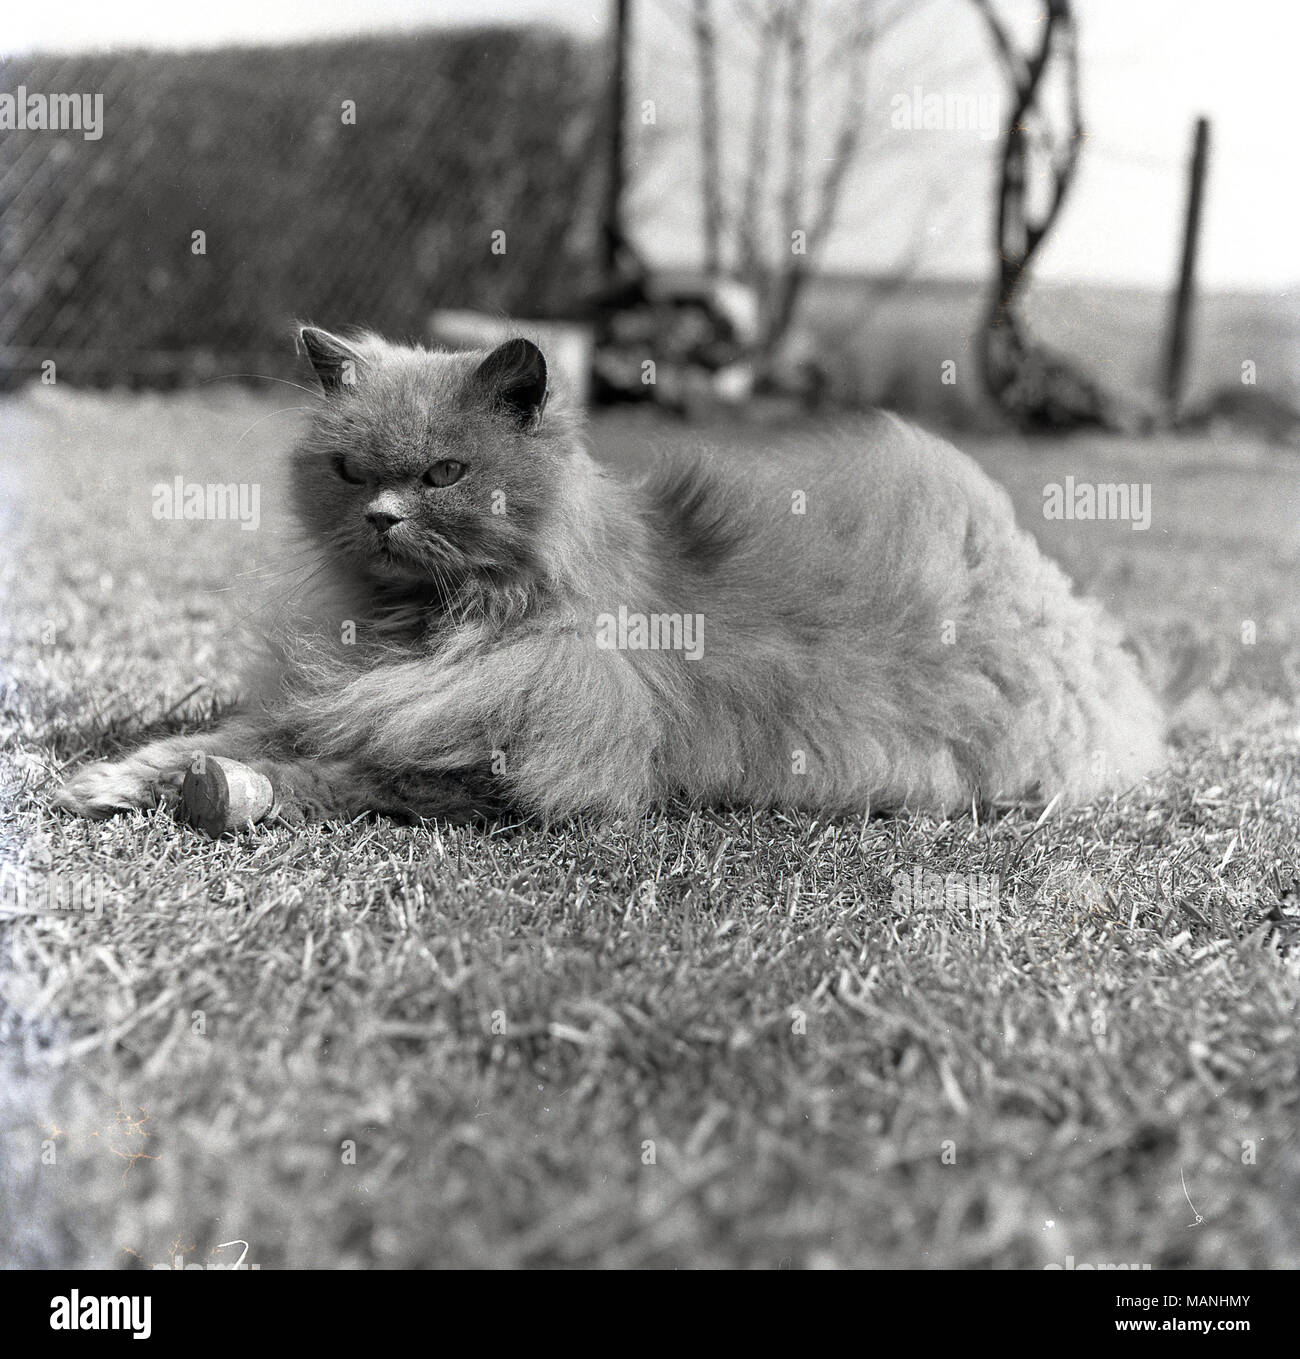 1950s, historical, an attractive domestic cat with a nice furry coat lying on grass outside, England, UK. Stock Photo